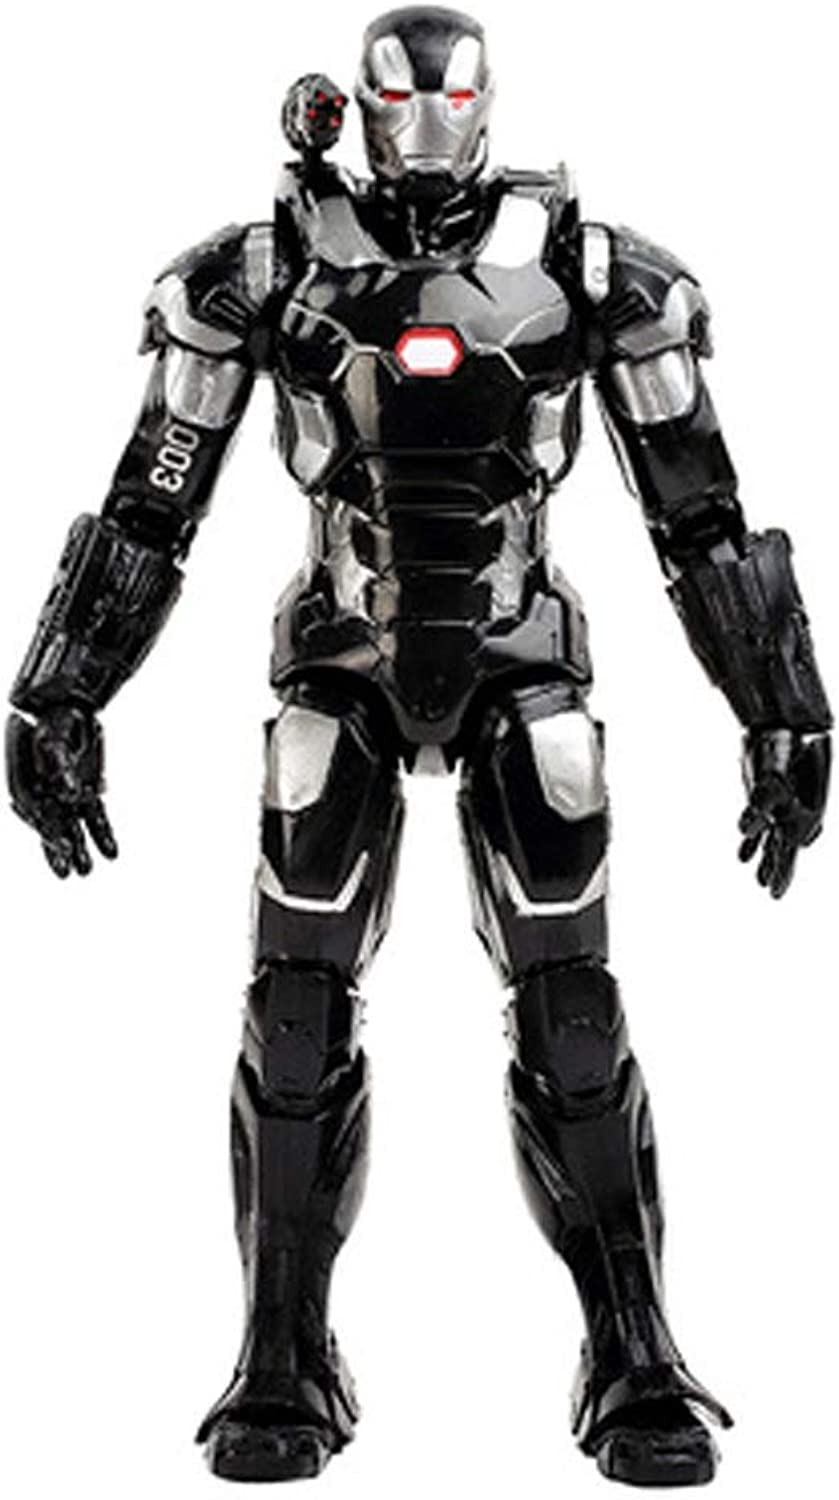 Toys  Marvel Toys  DC Toys  Avengers 3 4 Joint Detachable  Spiderman   Superman   Panther   Iron Man   Captain America ( color   G )